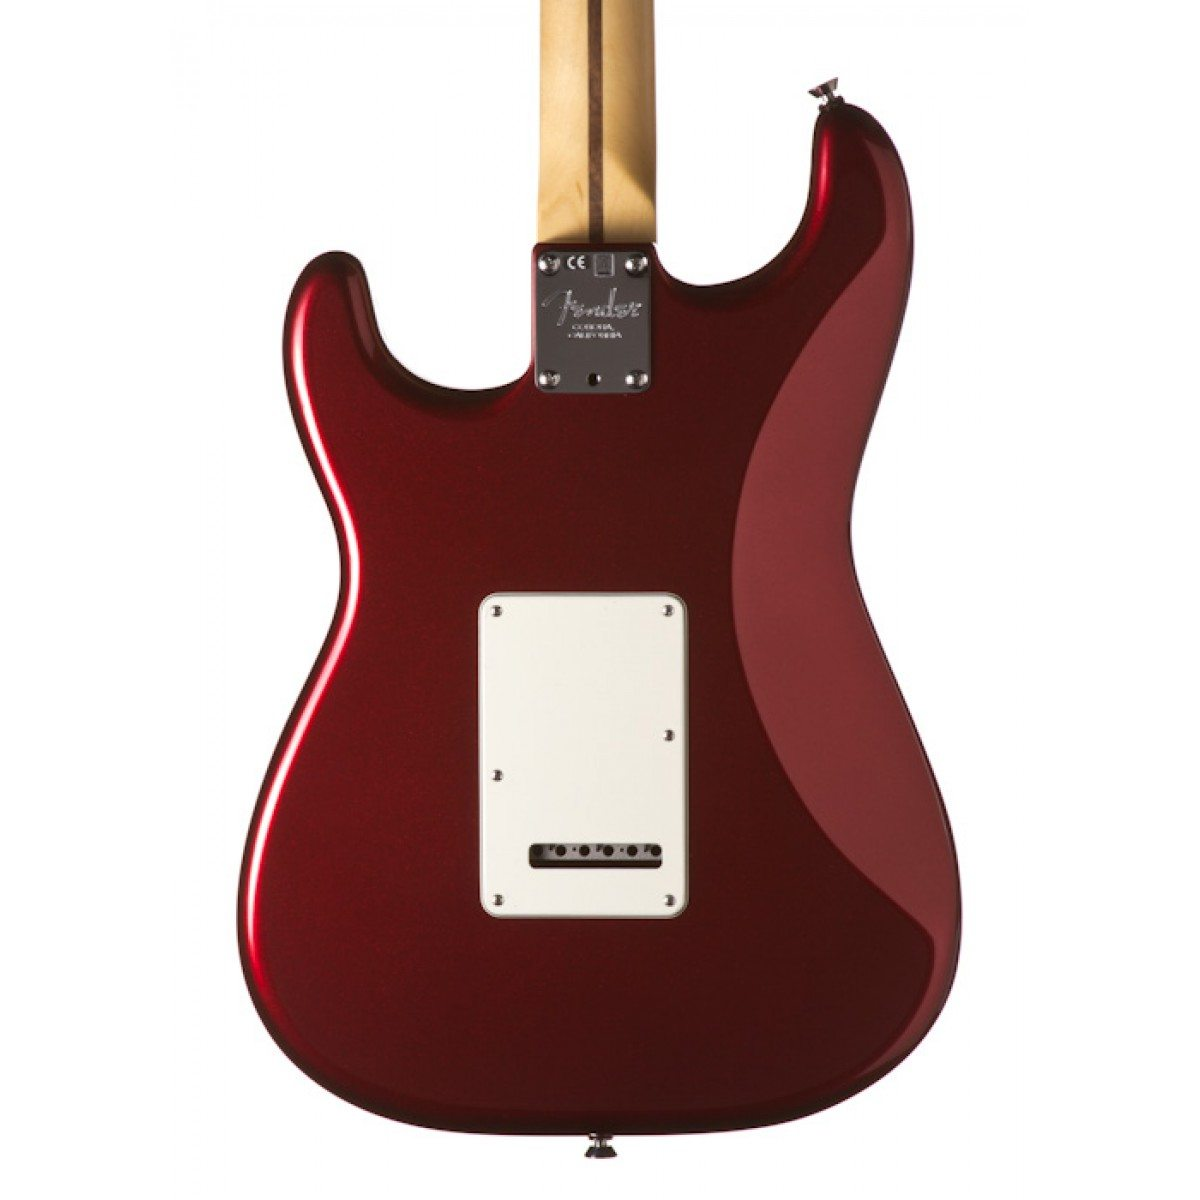 Fender American Standard Stratocaster Electric Guitar, Mystic Red,Maple  Fingerboard and Case